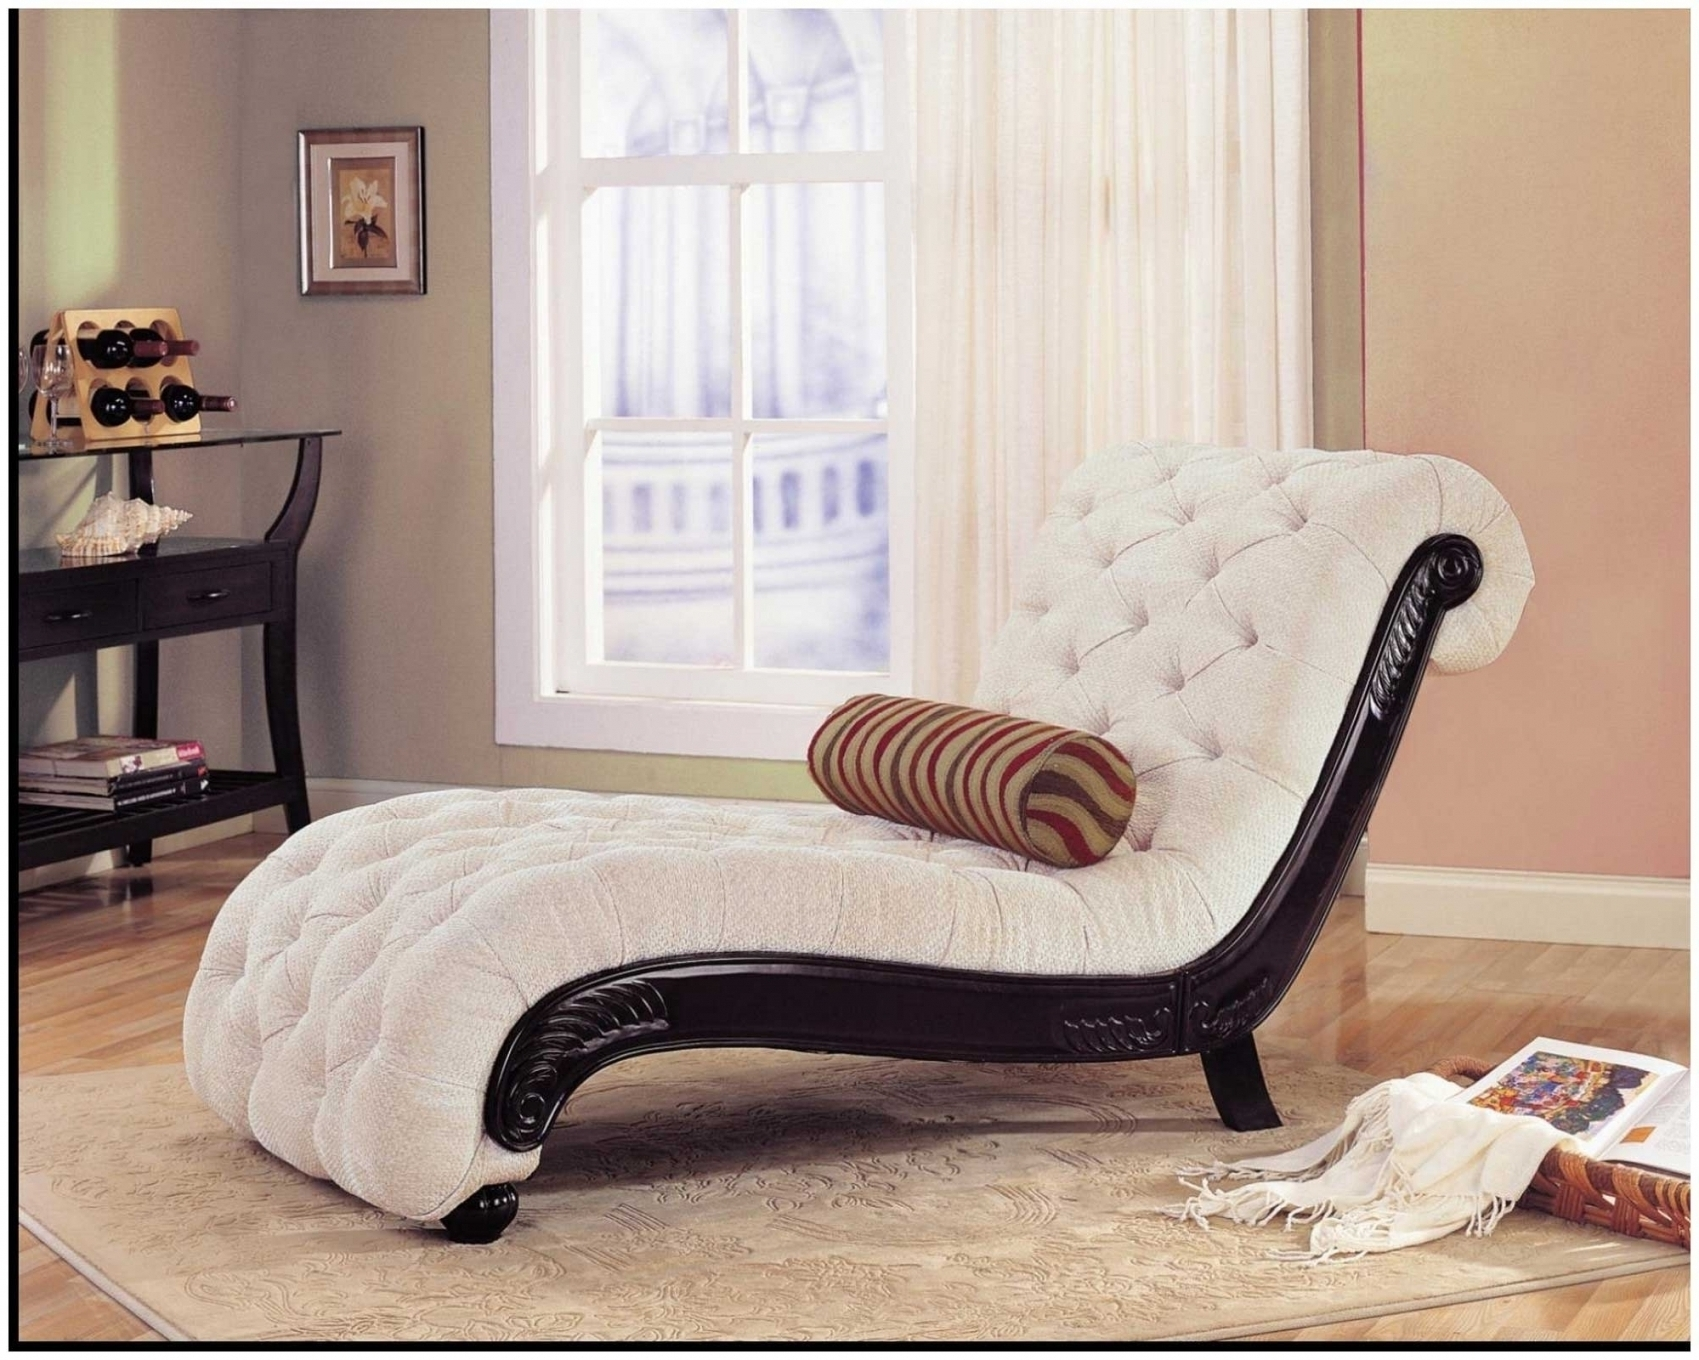 2017 Fascinating Bedroom Chaise Lounge Chairs Indoor White Colour For Throughout Bedroom Chaise Lounge Chairs (View 1 of 15)